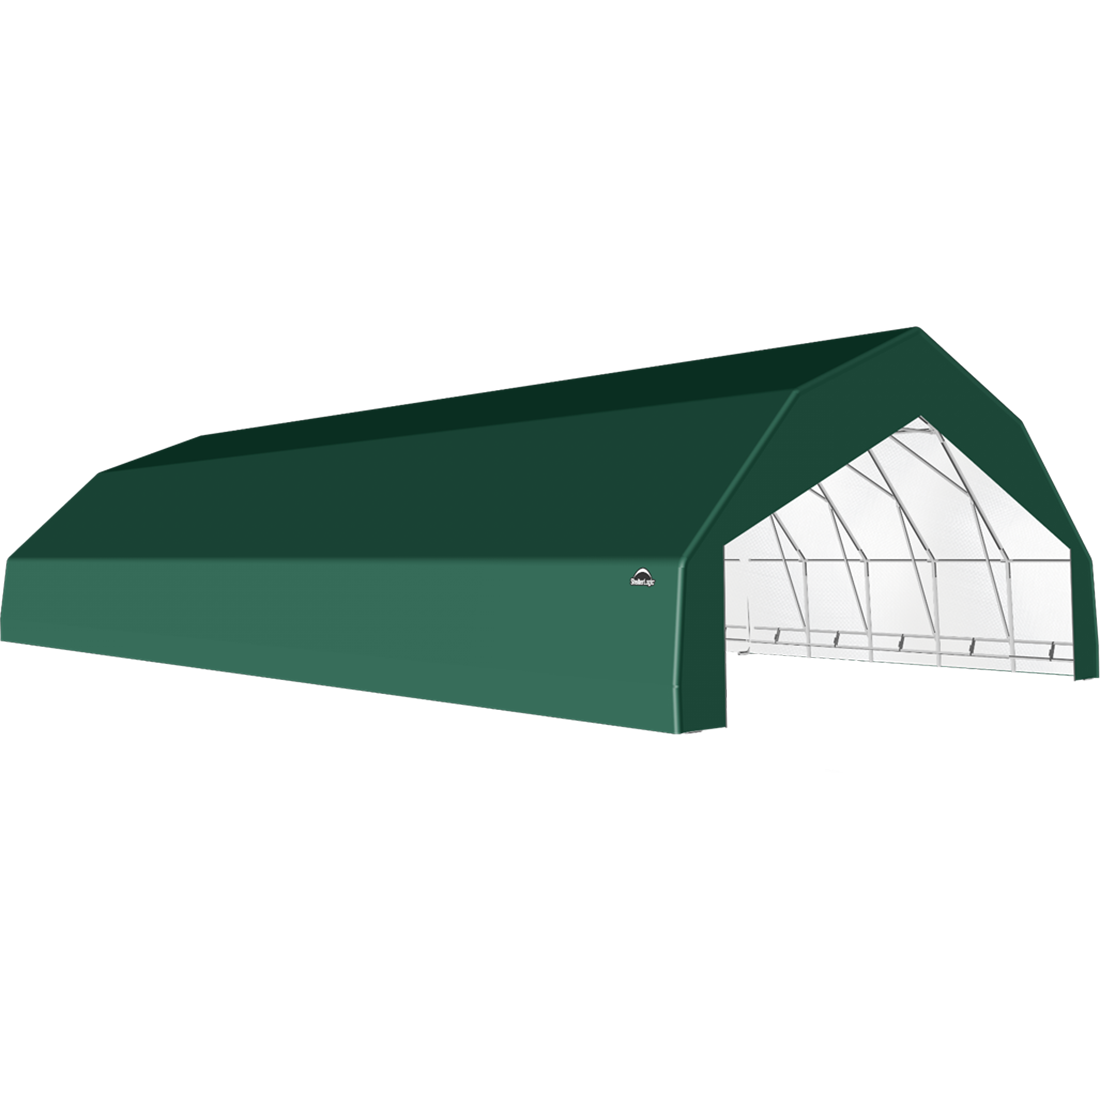 ShelterTech SP Series Barn Shelter, 30 ft. x 60 ft. x 15 ft. Heavy Duty PVC 14.5 oz. Green